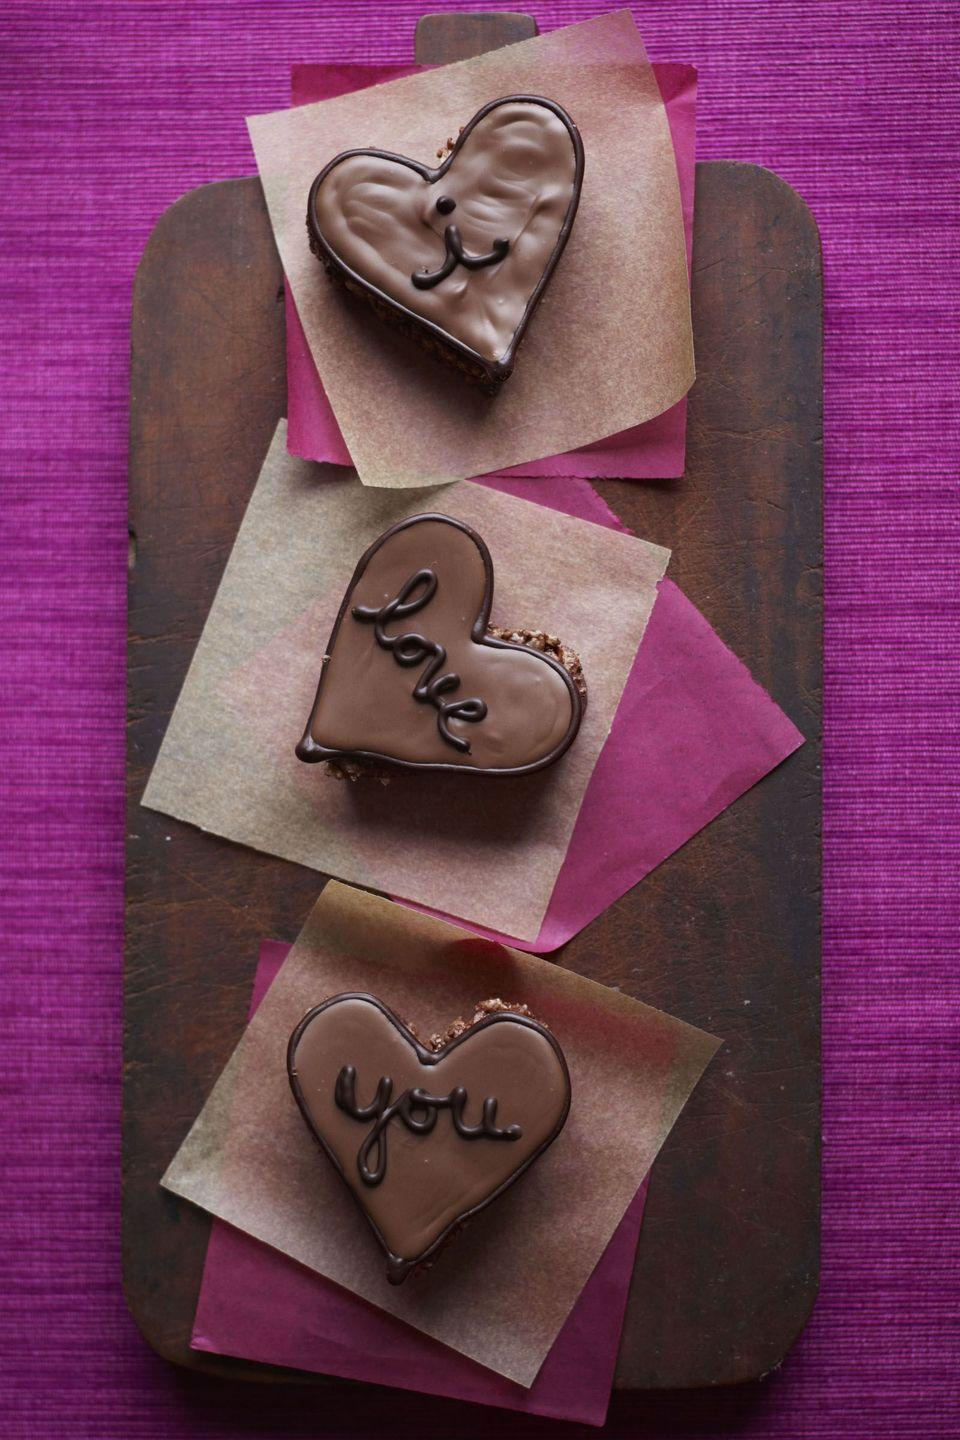 """<p>Perfect for Valentine's Day, these adorable confections could make anyone weak in the knees.</p><p><a href=""""https://www.goodhousekeeping.com/food-recipes/a14039/hazelnut-hearts-recipe-ghk0212/"""" rel=""""nofollow noopener"""" target=""""_blank"""" data-ylk=""""slk:Get the recipe for Hazelnut Hearts »"""" class=""""link rapid-noclick-resp""""><em>Get the recipe for Hazelnut Hearts »</em></a></p>"""